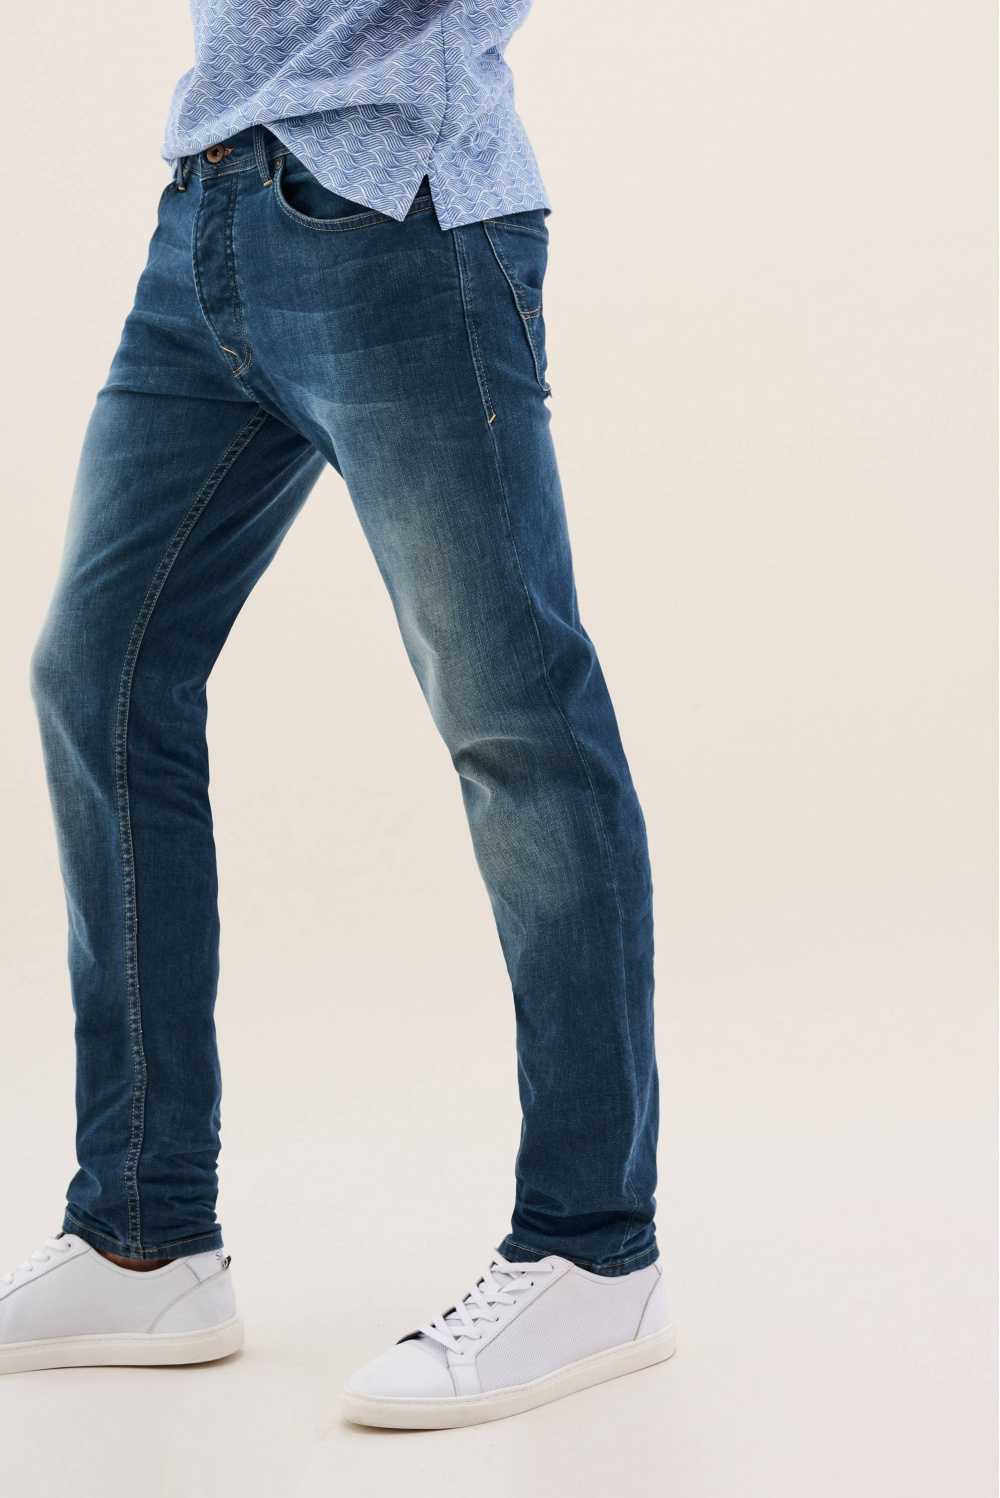 Lima tapered greencast jeans with light wear